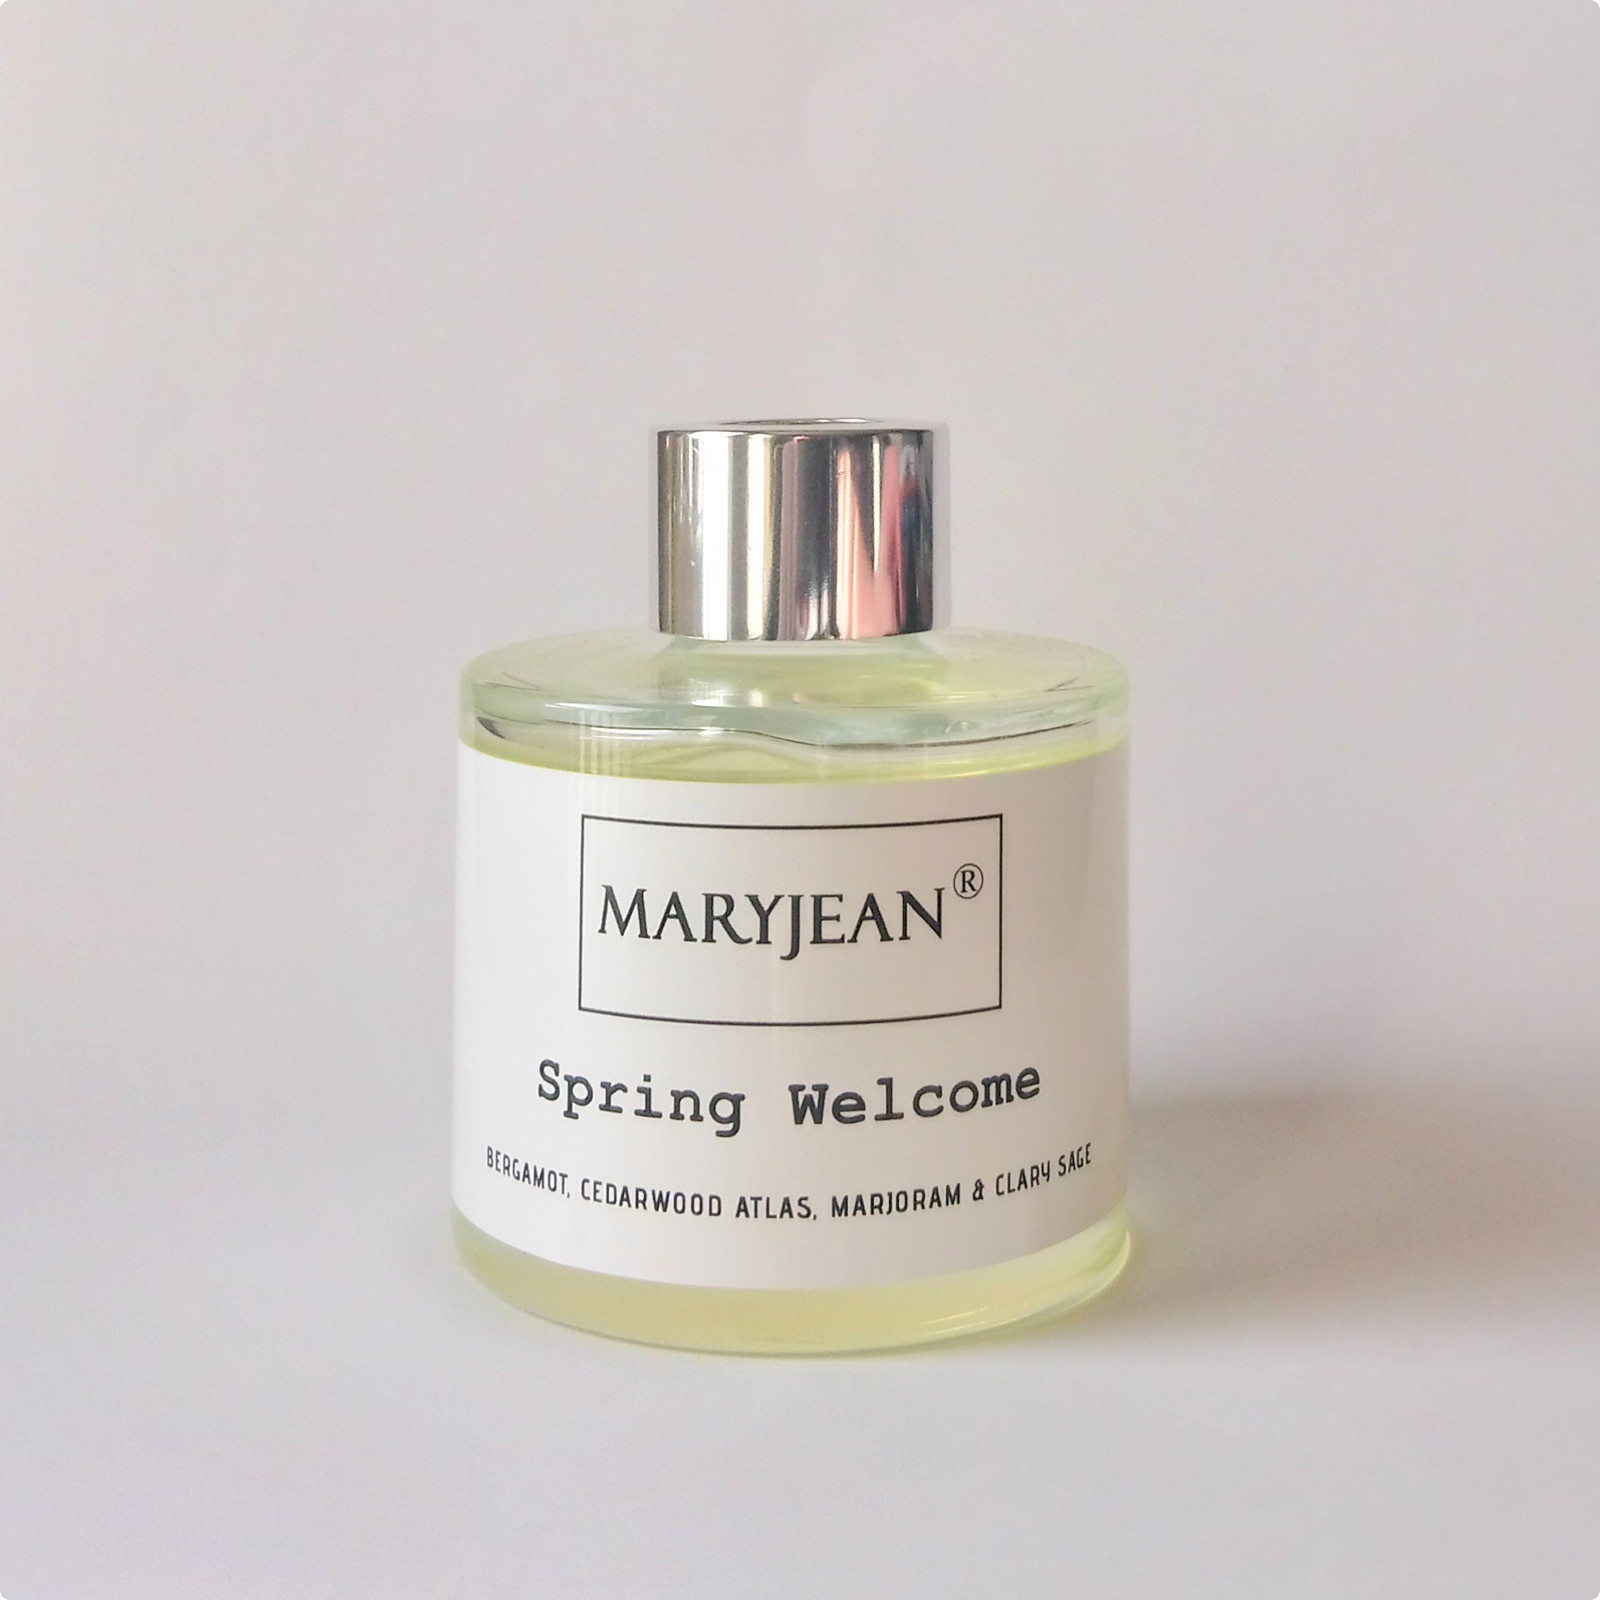 Home lifestyle far more with a natural essential oil room fragrance from this sustainable handmade product quality choice for your home and family, free from allergens and harmful toxins